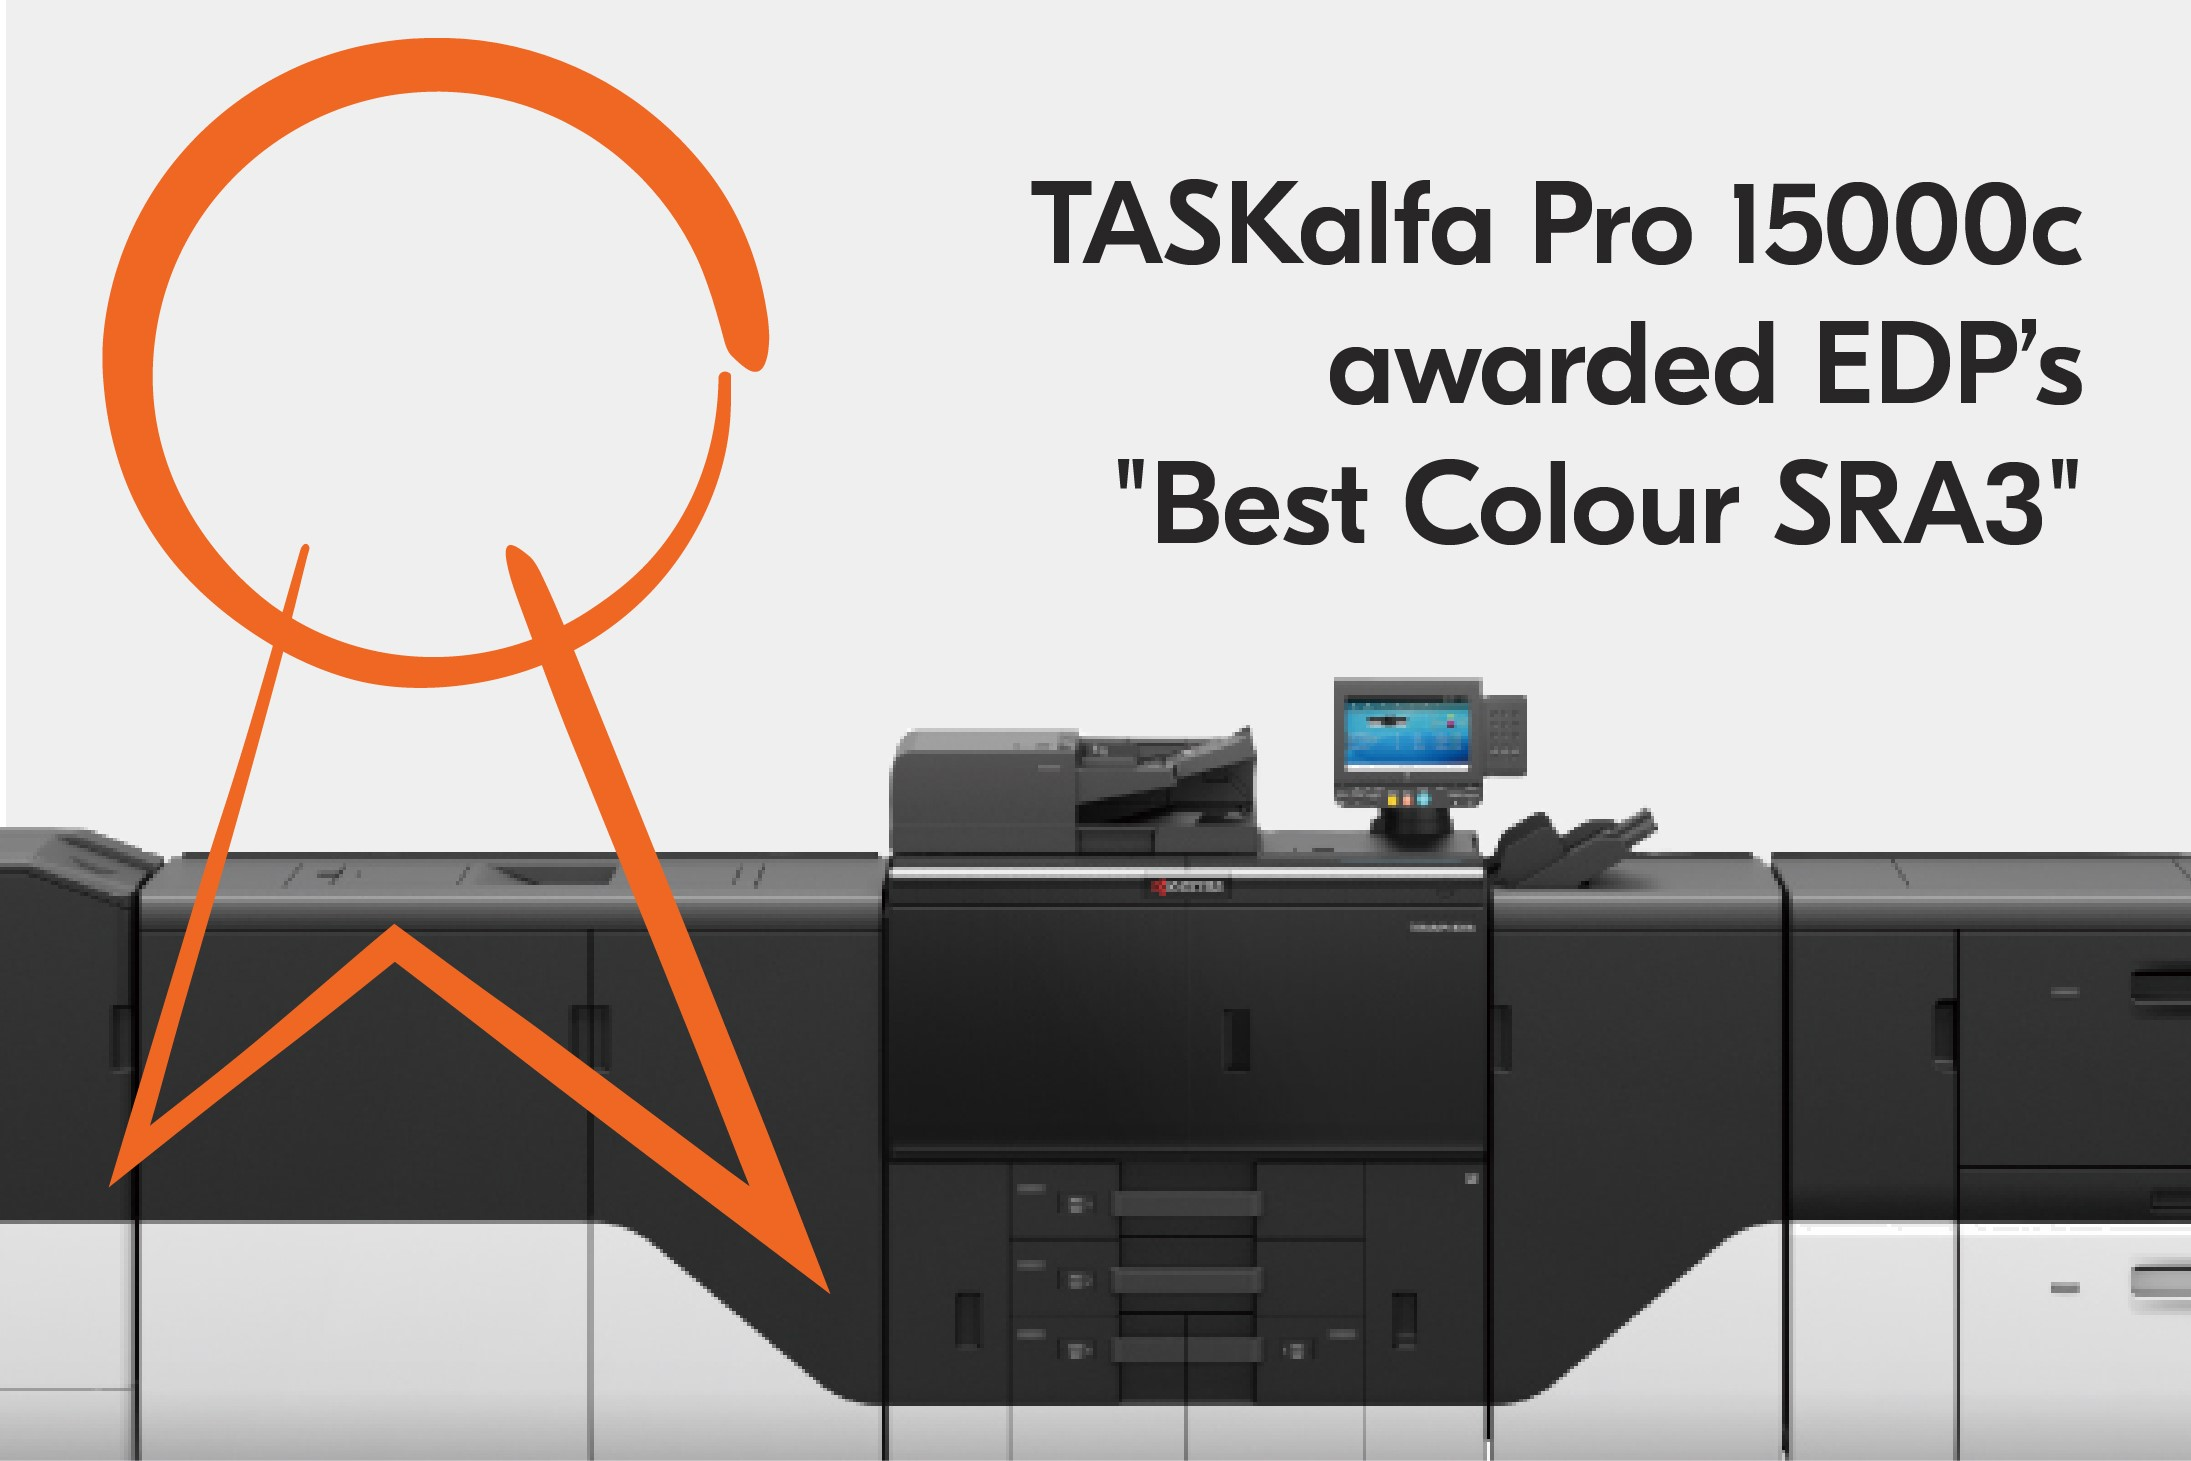 Kyocera's TASKalfa Pro 15000c wins the Best Colour SRA3 Award of the European Digital Press Association.